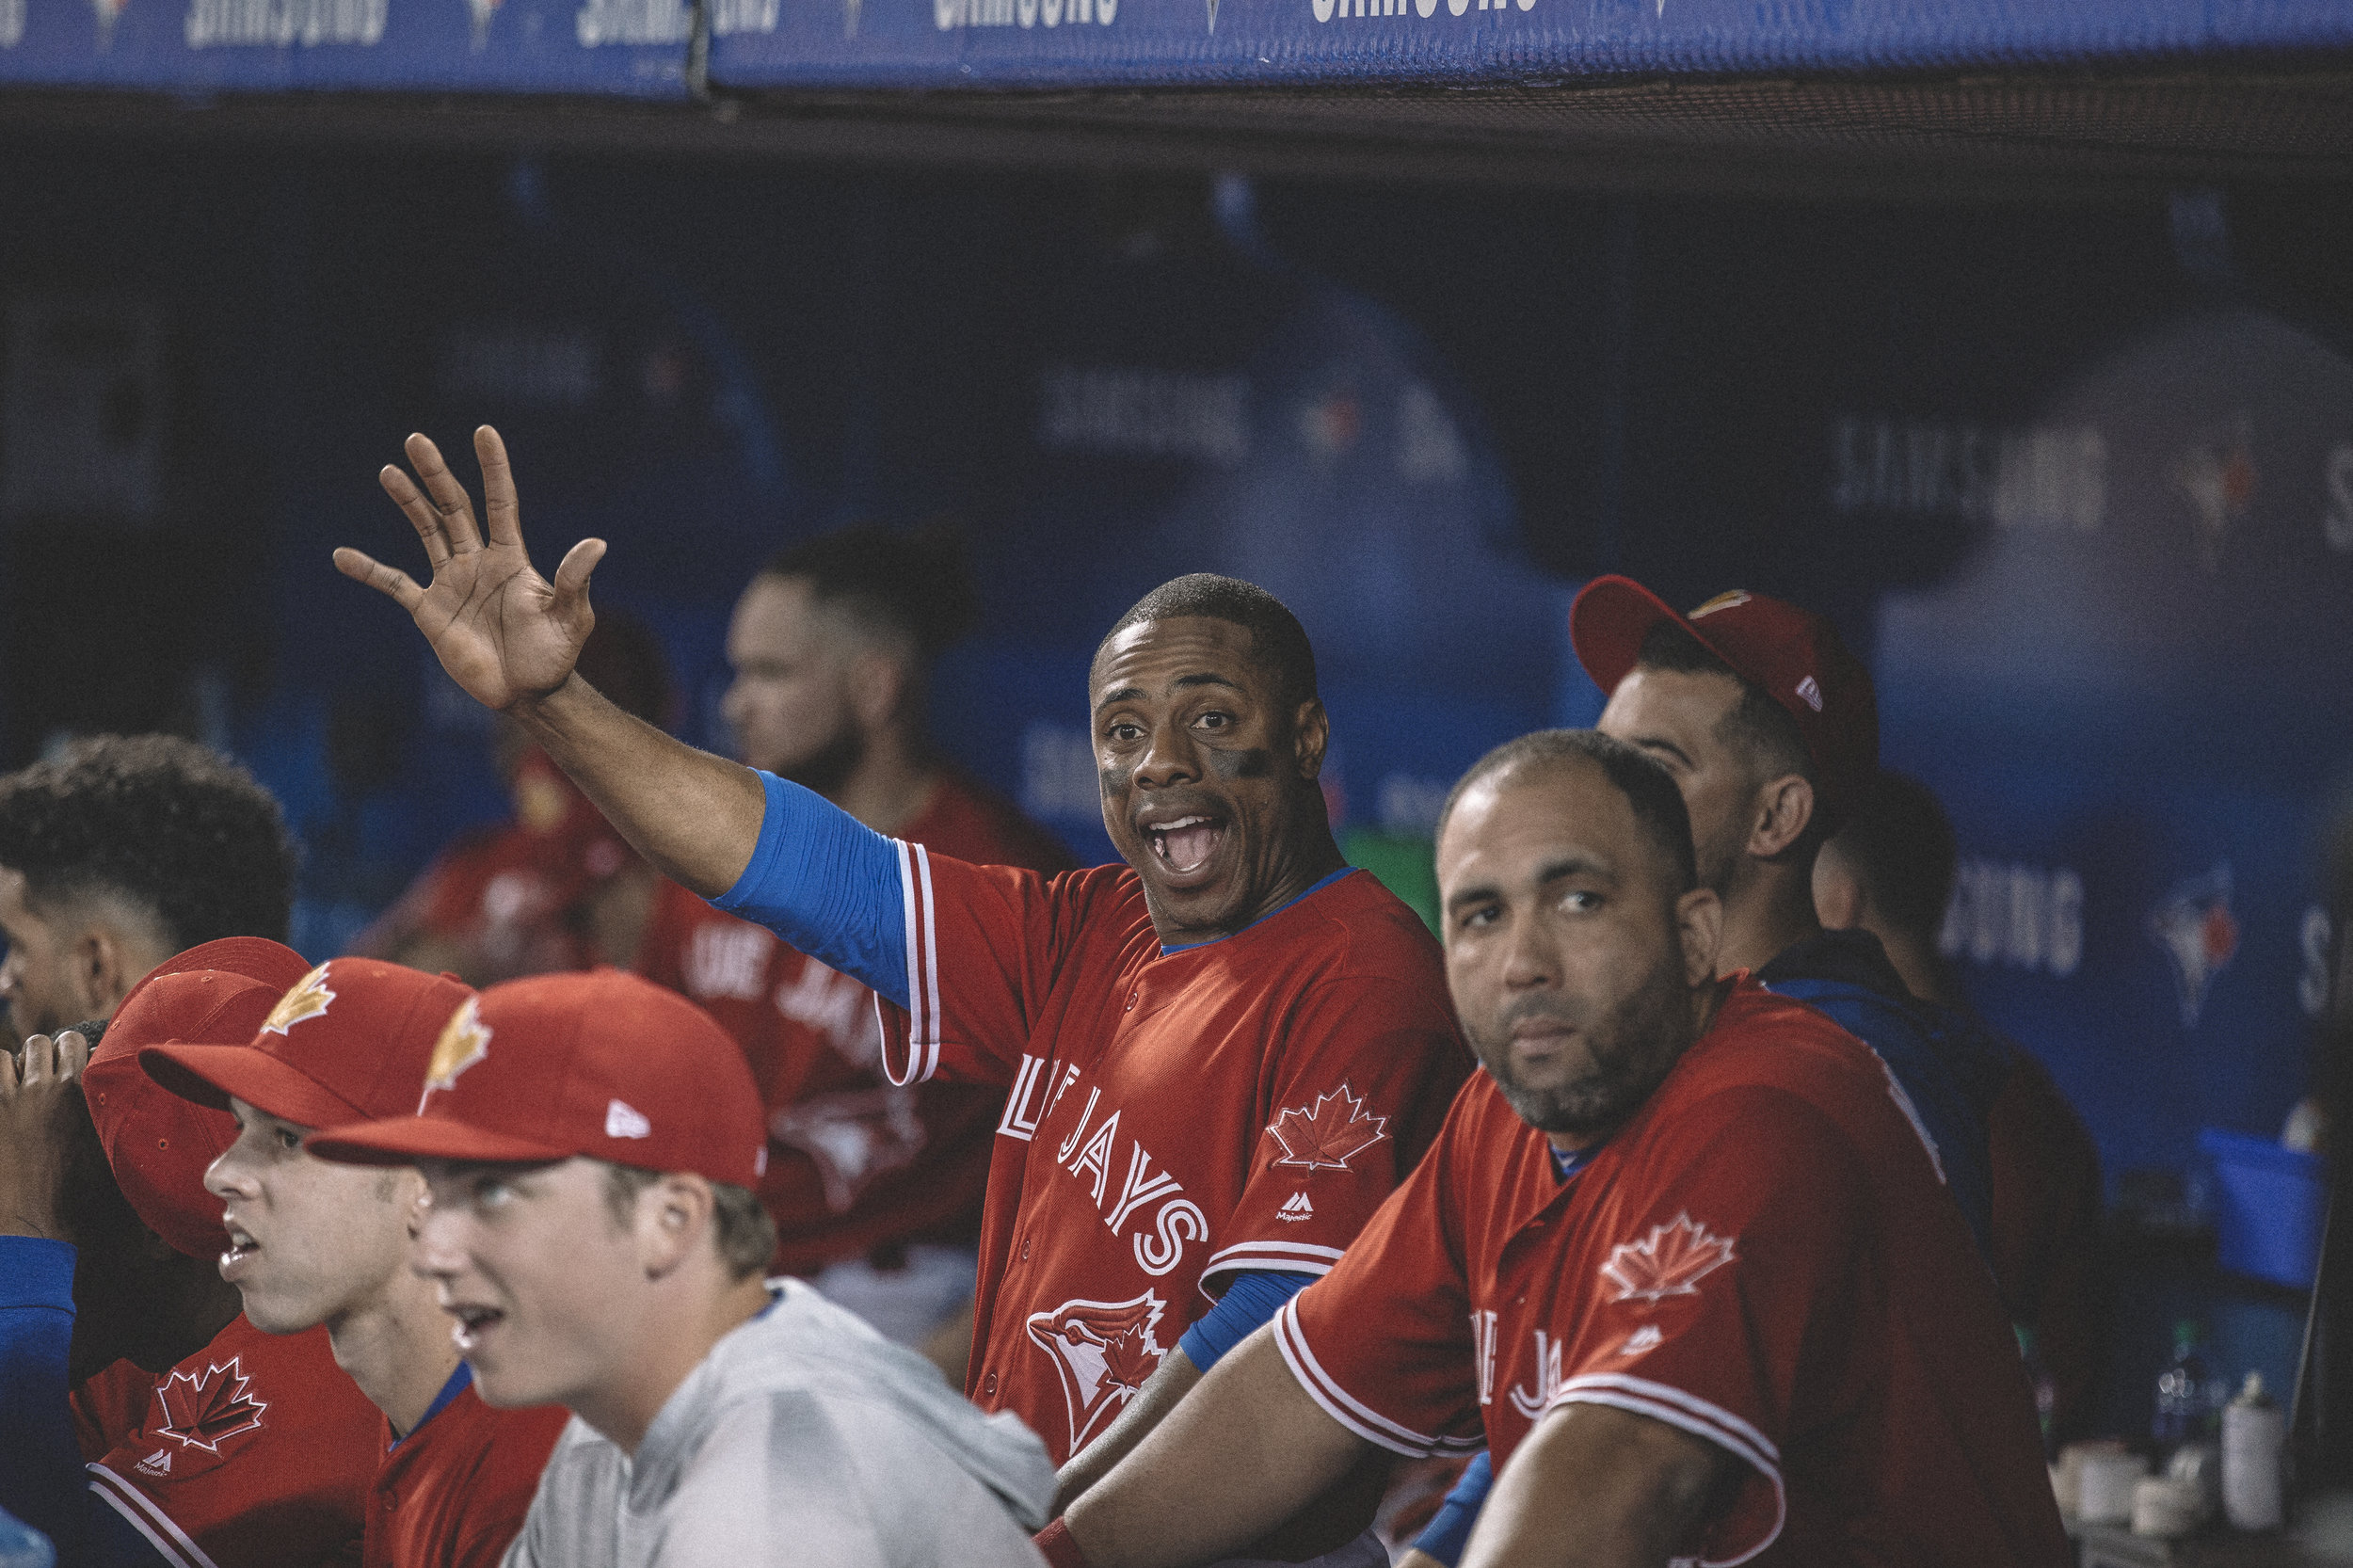 Curtis Granderson Jr. waving from the the Blue Jays dugout